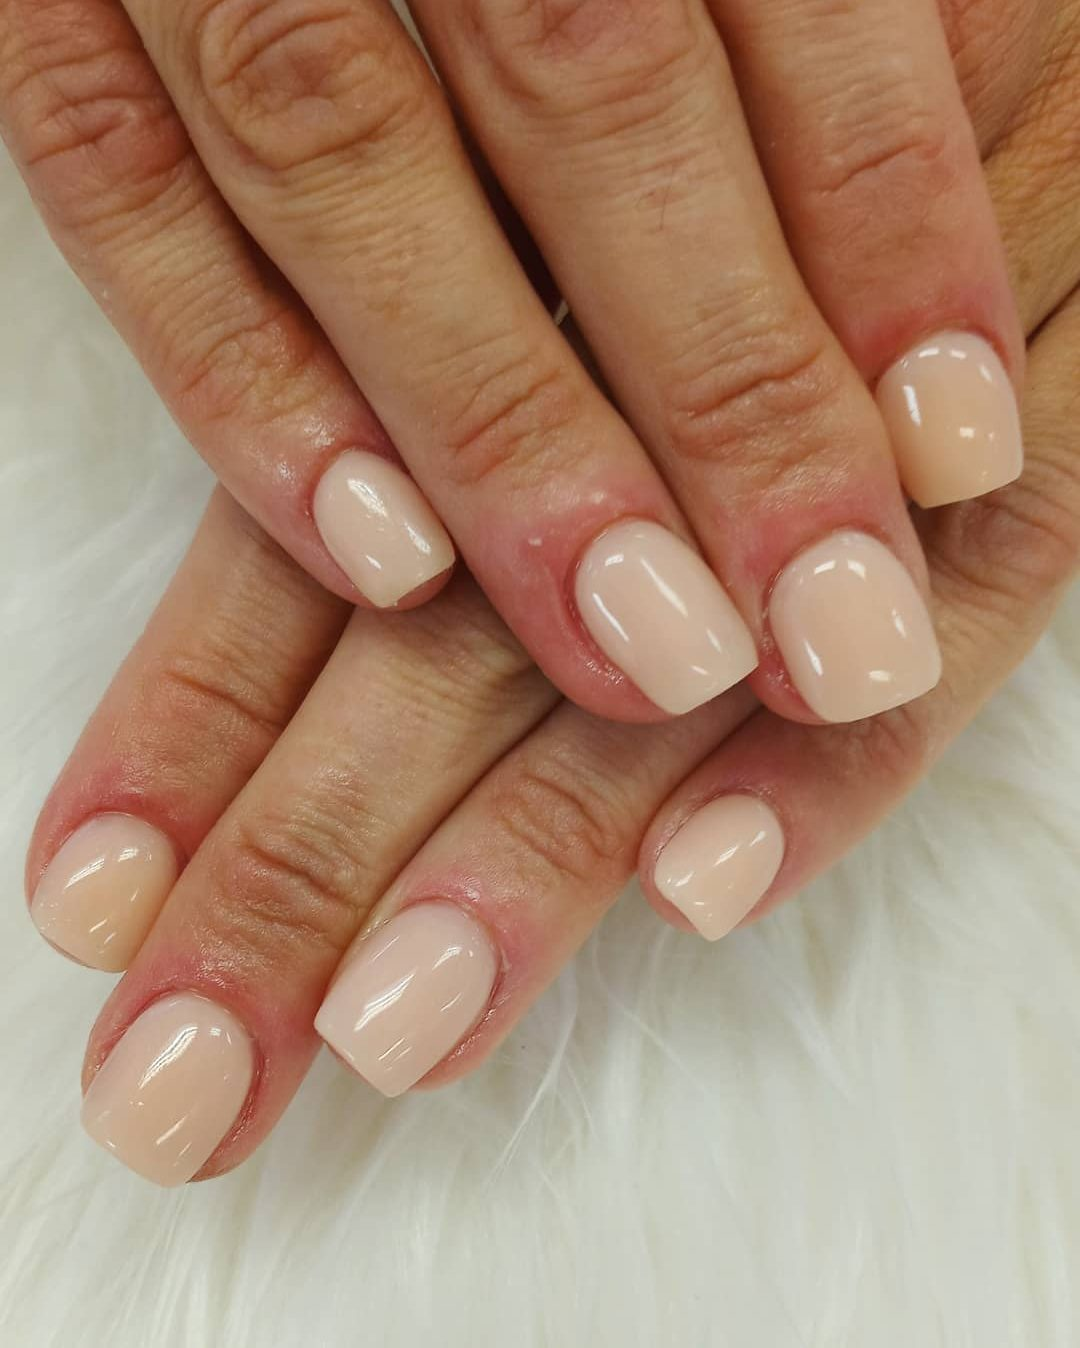 polygel-overlay-for-nail-biters